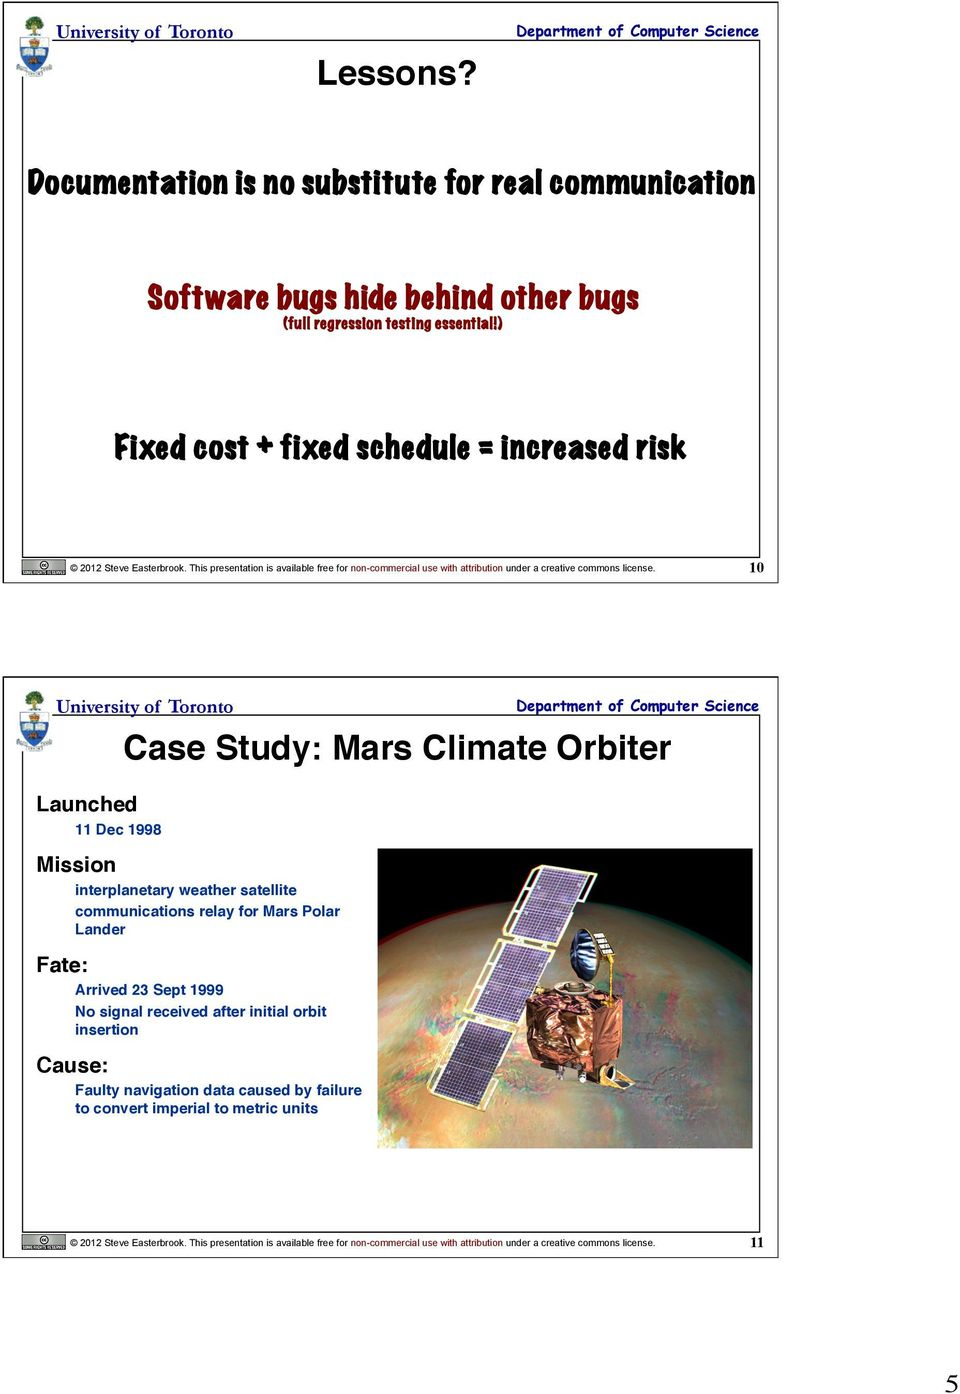 Lecture 10 Managing Risk Management Pdf Licensed For Noncommercial Use Only Circuit Opening Relay Launched 11 Dec 1998 Case Study Mars Climate Orbiter Mission